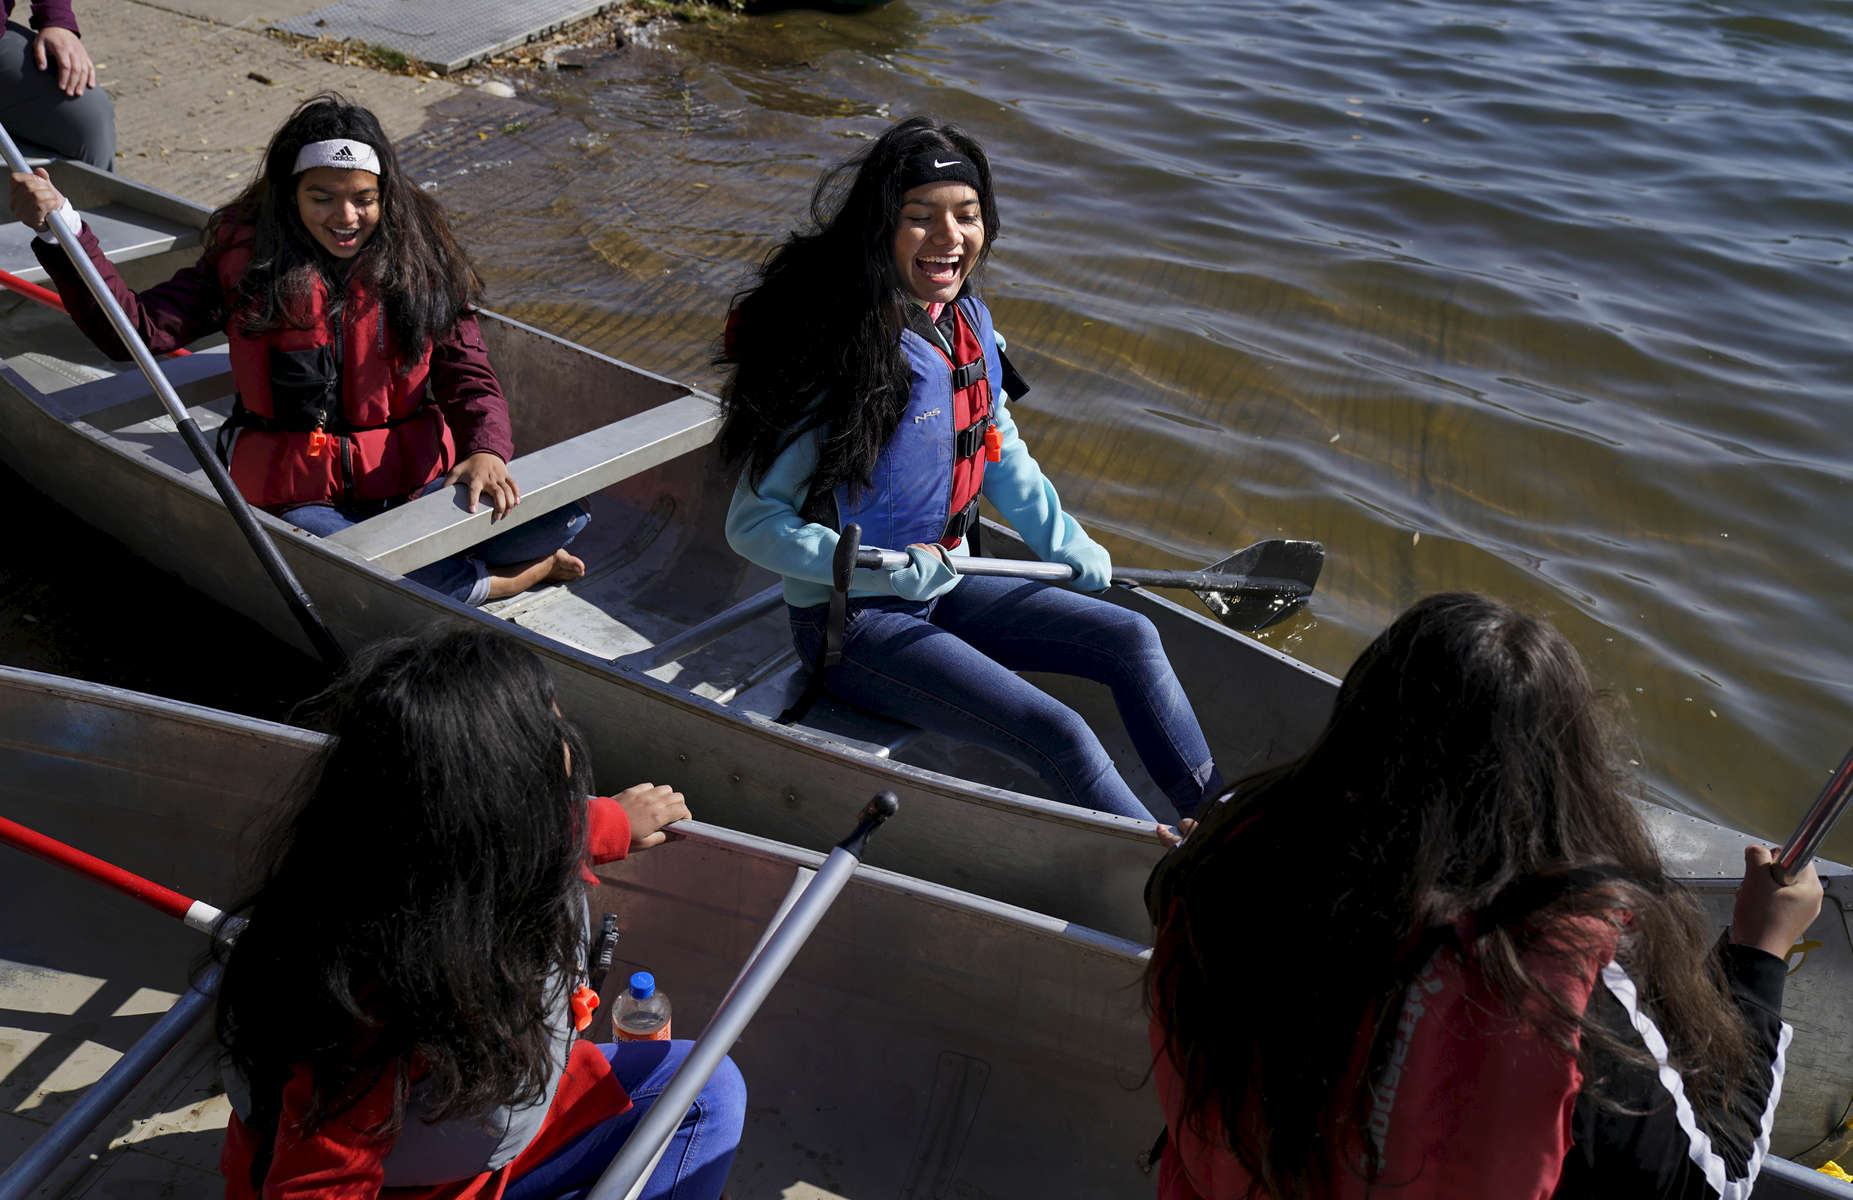 Susmita Adhikari, 16, upper left, and Laxmi Adhikari, 14, center, are all smiles as they canoe for the first time at the Bear Creek Reservoir in Lakewood, Colo. on Oct. 14, 2017.